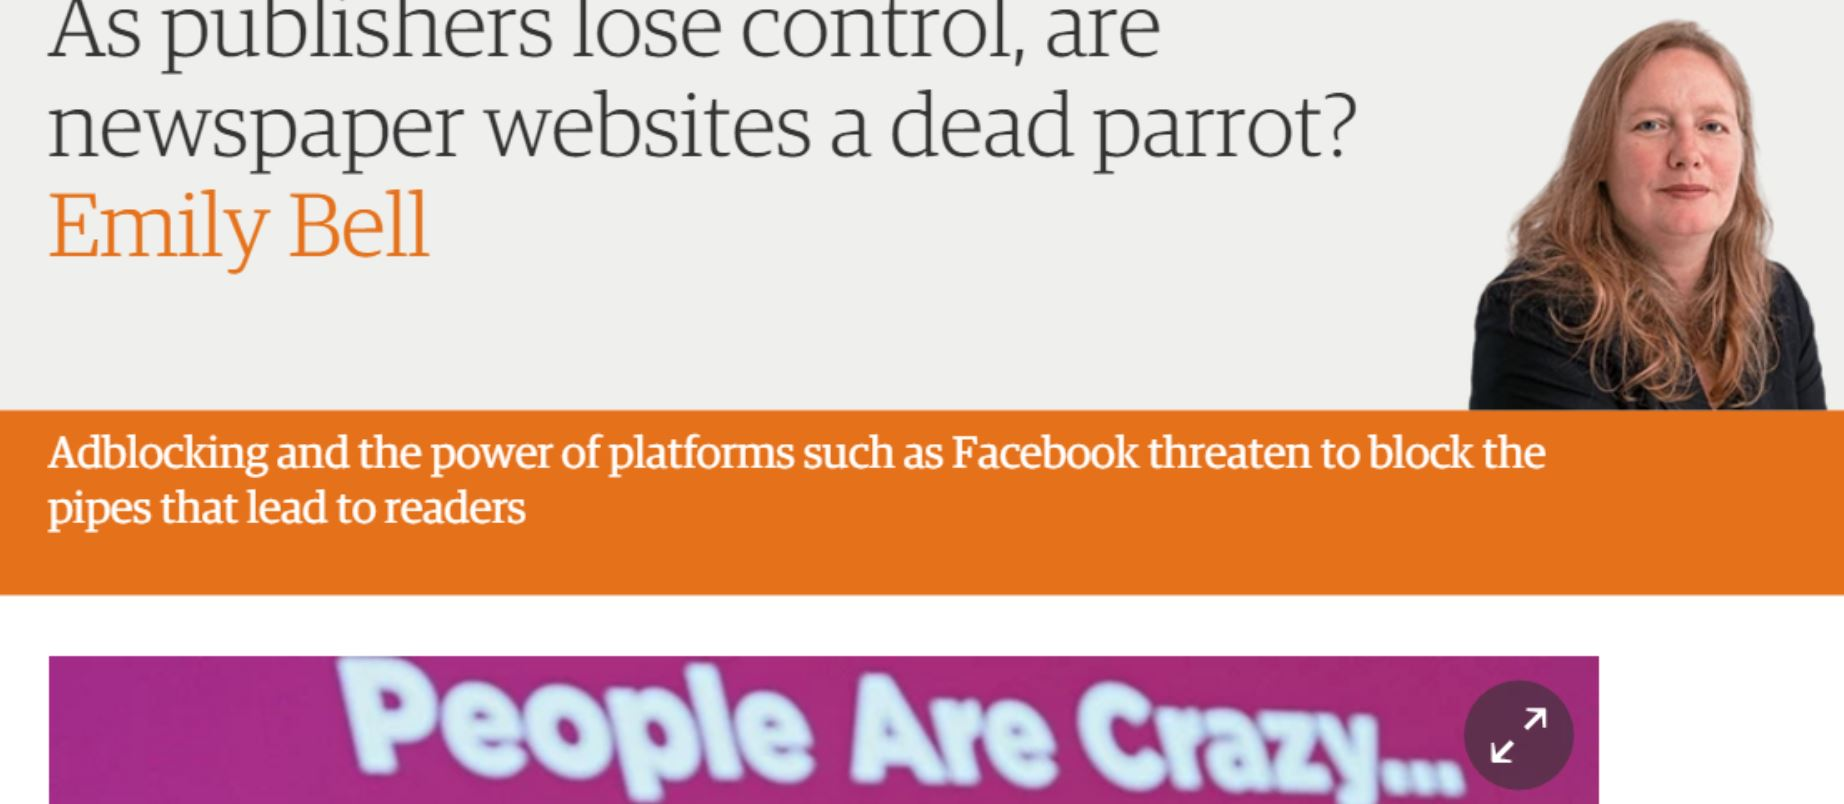 As publishers lose control, are newspaper websites a dead parrot?